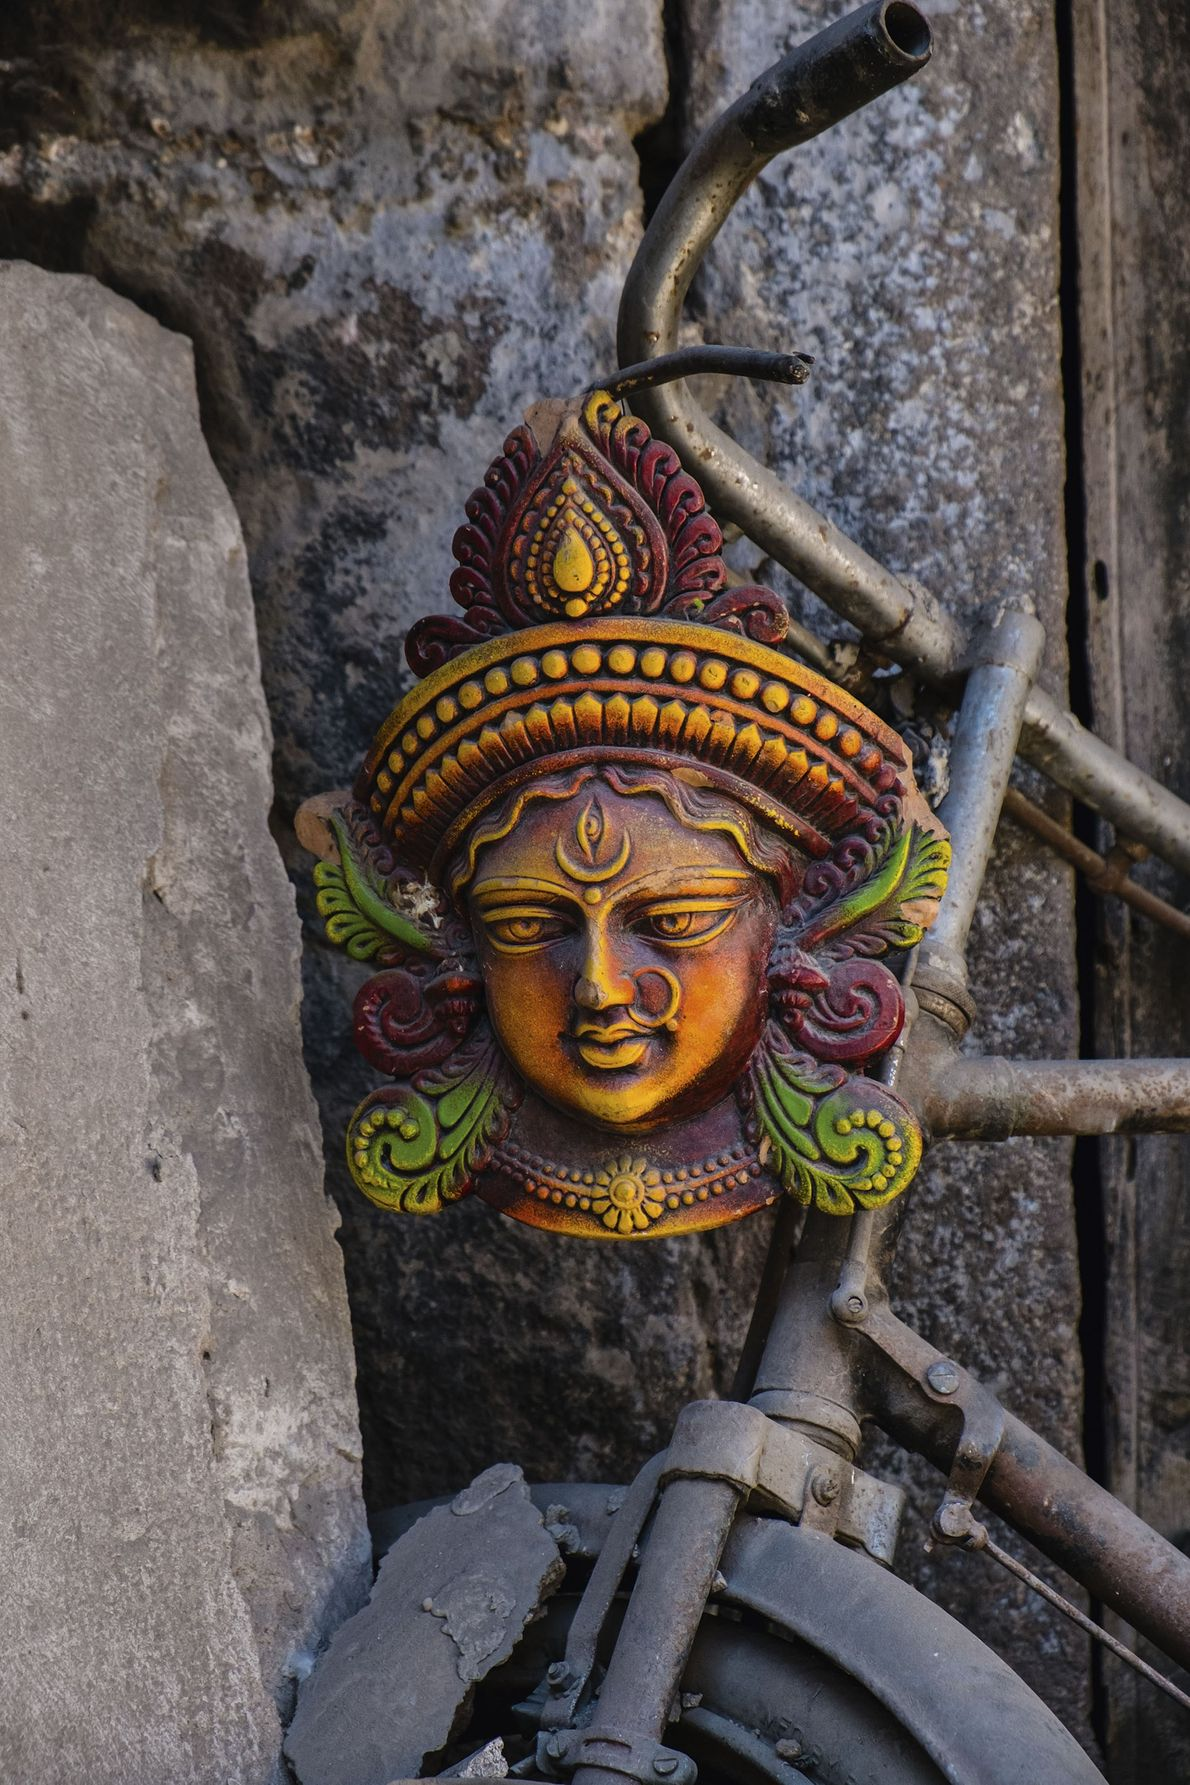 Bust of the Hindu goddess Devi decorating a bicycle.